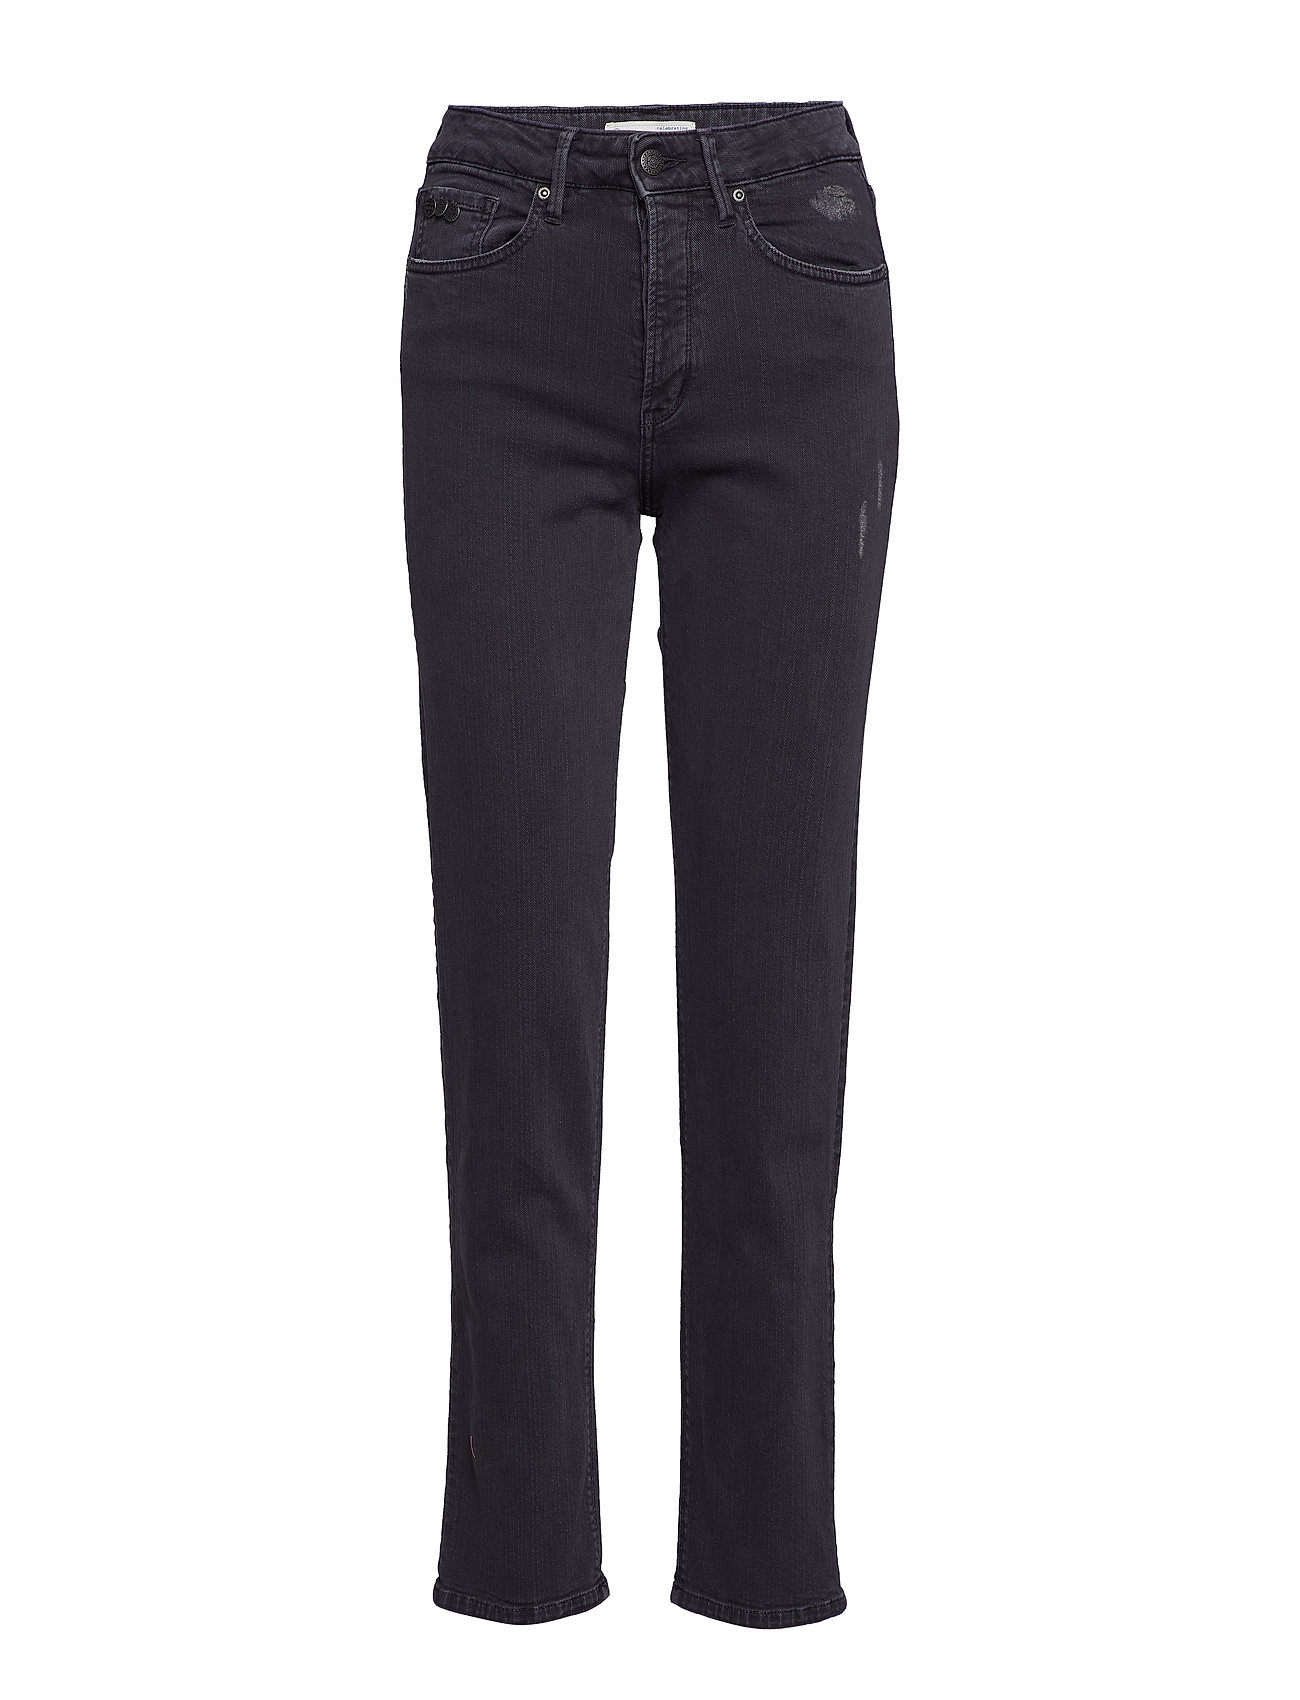 ODD MOLLY chord jeans - CHARCOAL